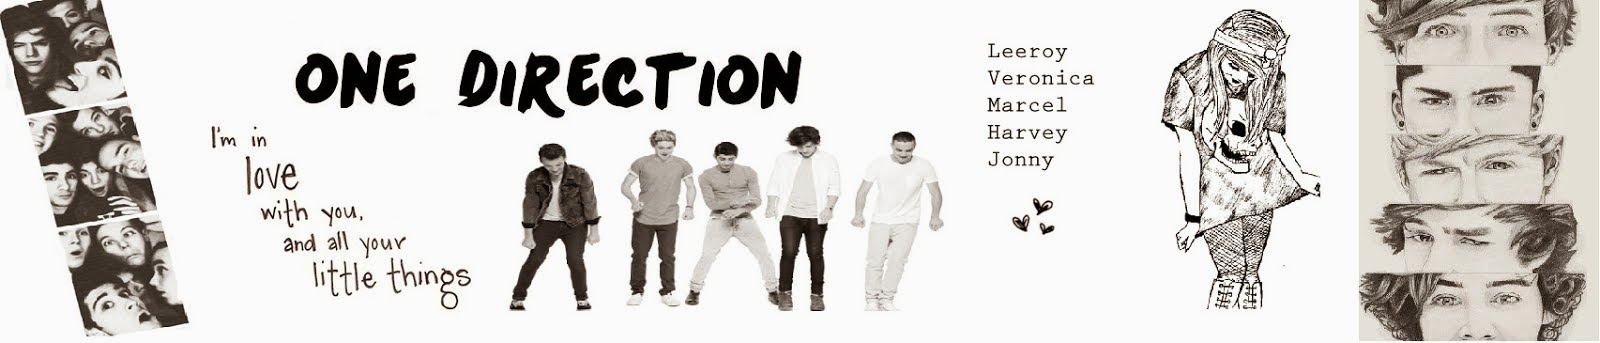 Bio One Direction 1D